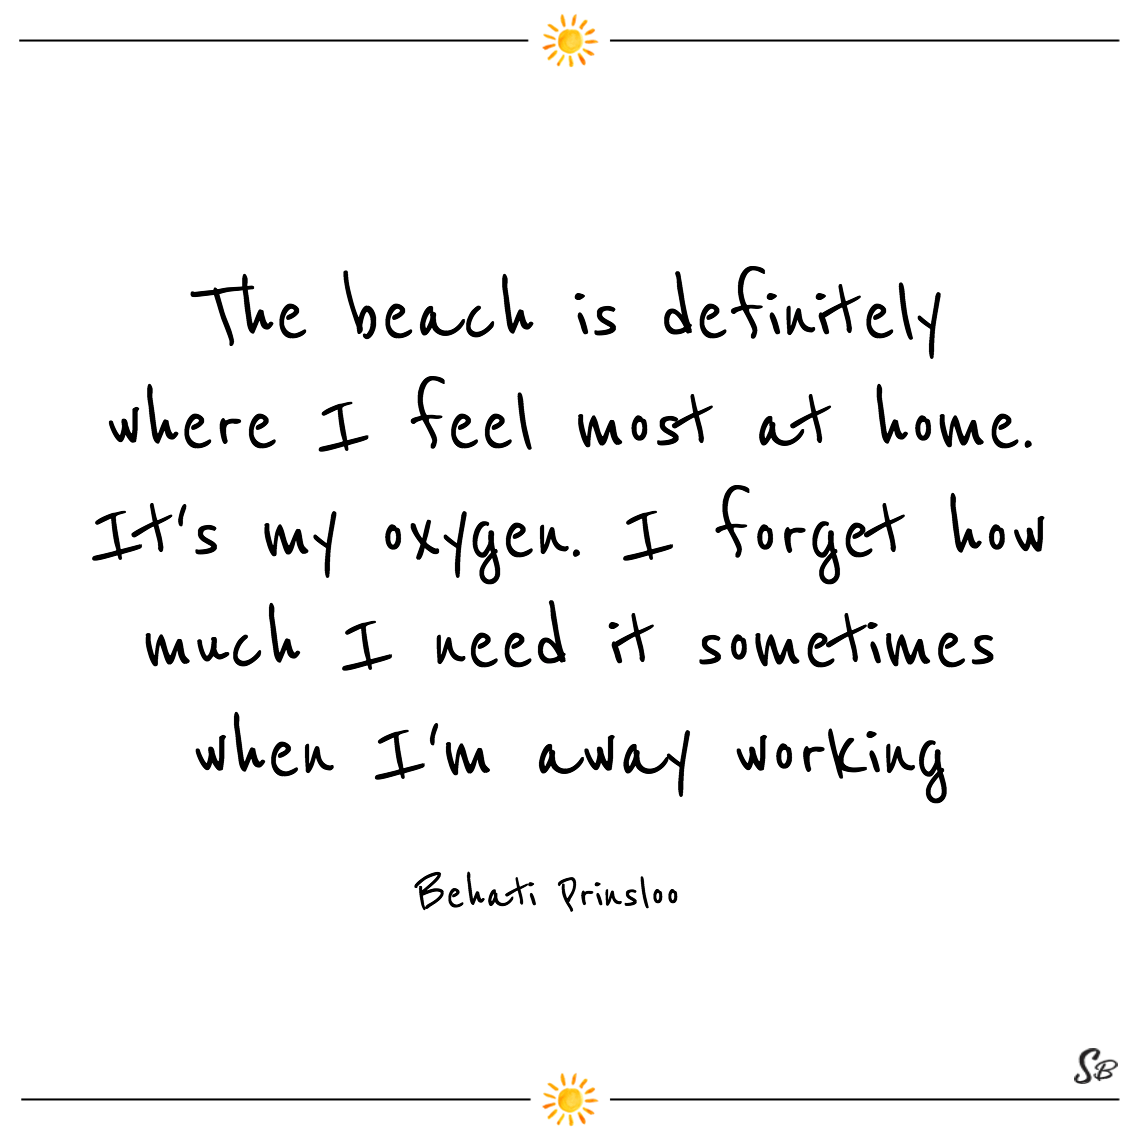 The beach is definitely where i feel most at home. it's my oxygen. i forget how much i need it sometimes when i'm away working behati prinsloo